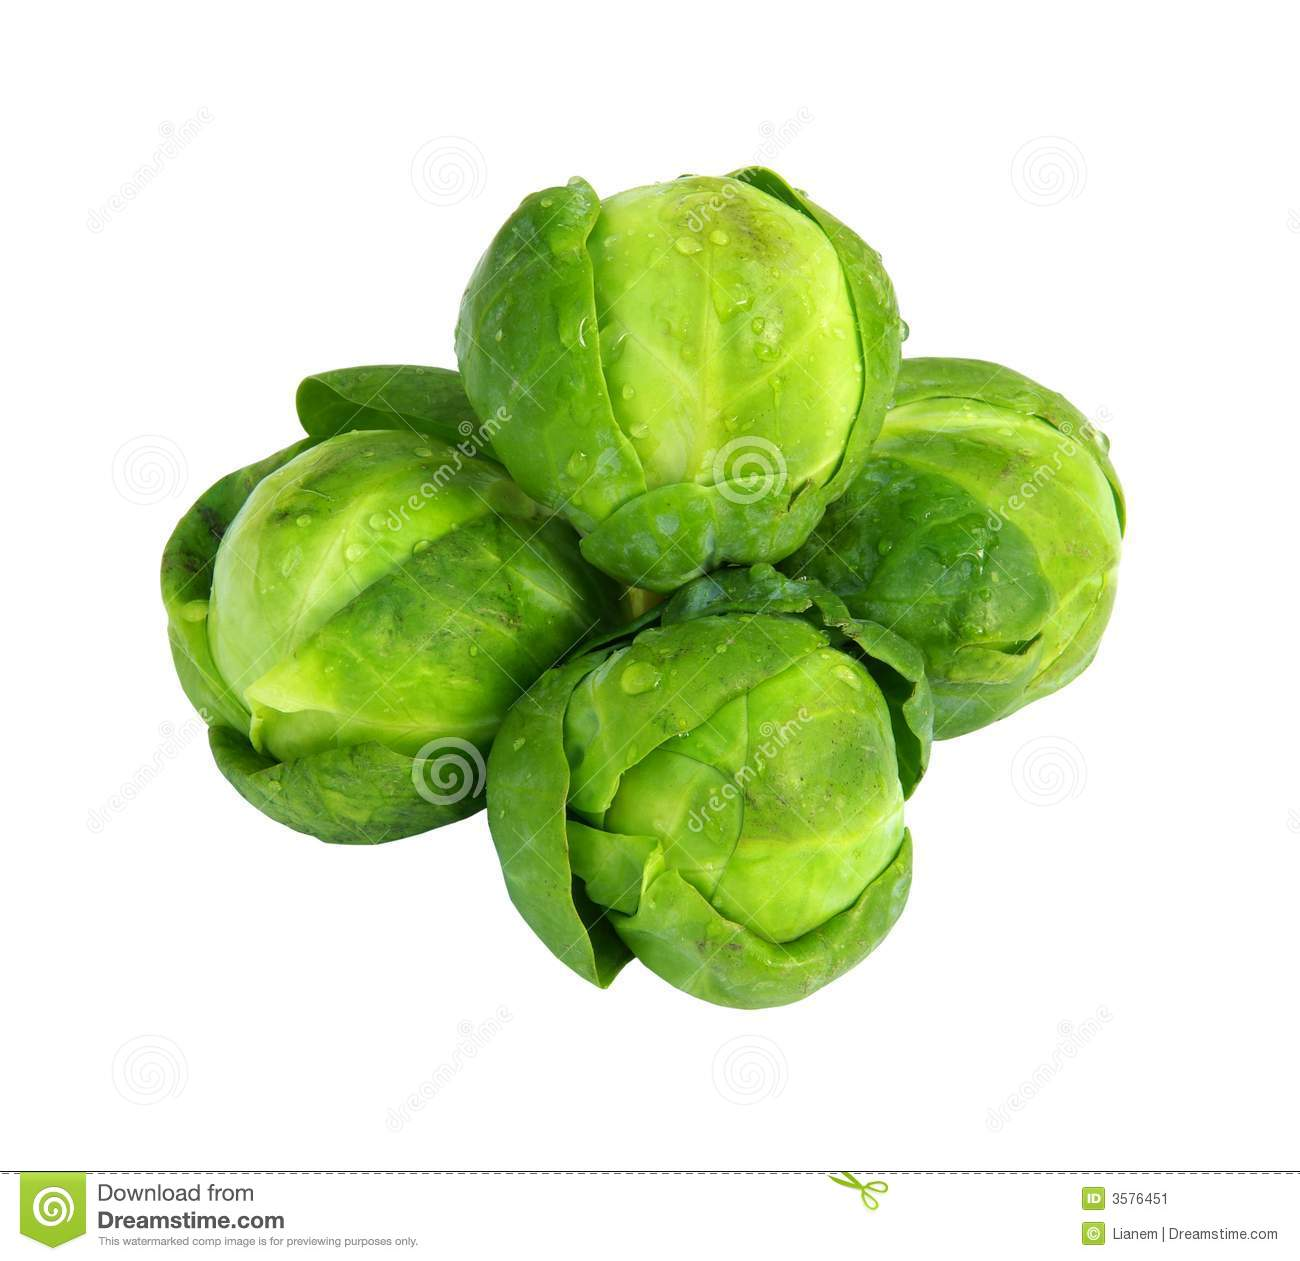 Brussel sprout clipart free.